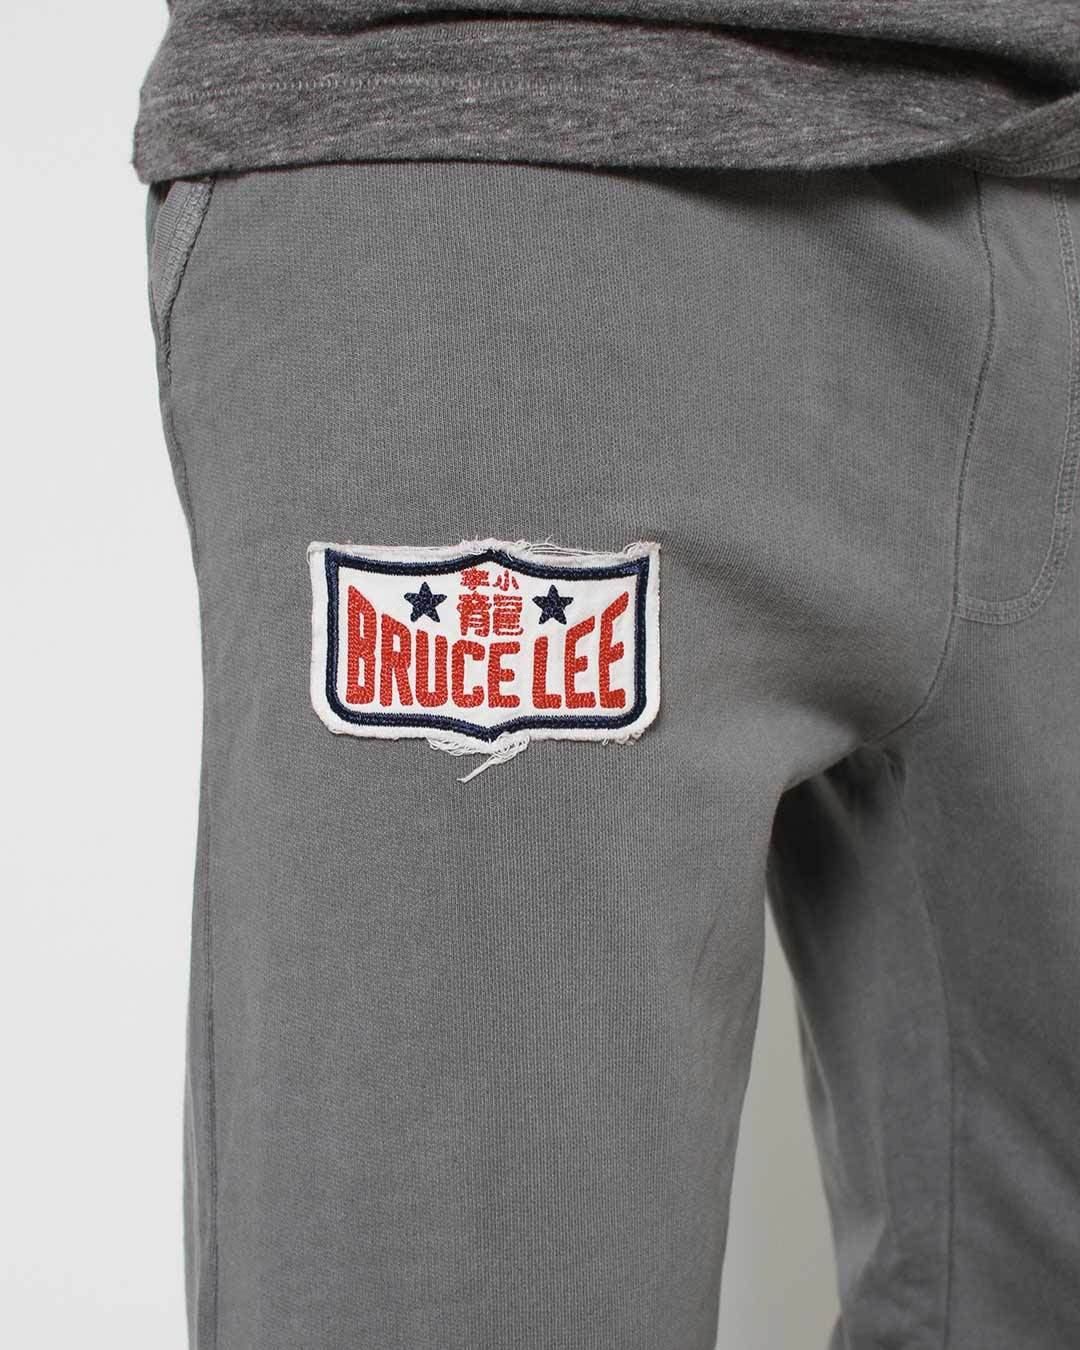 Bruce Lee JKD Sweatpants